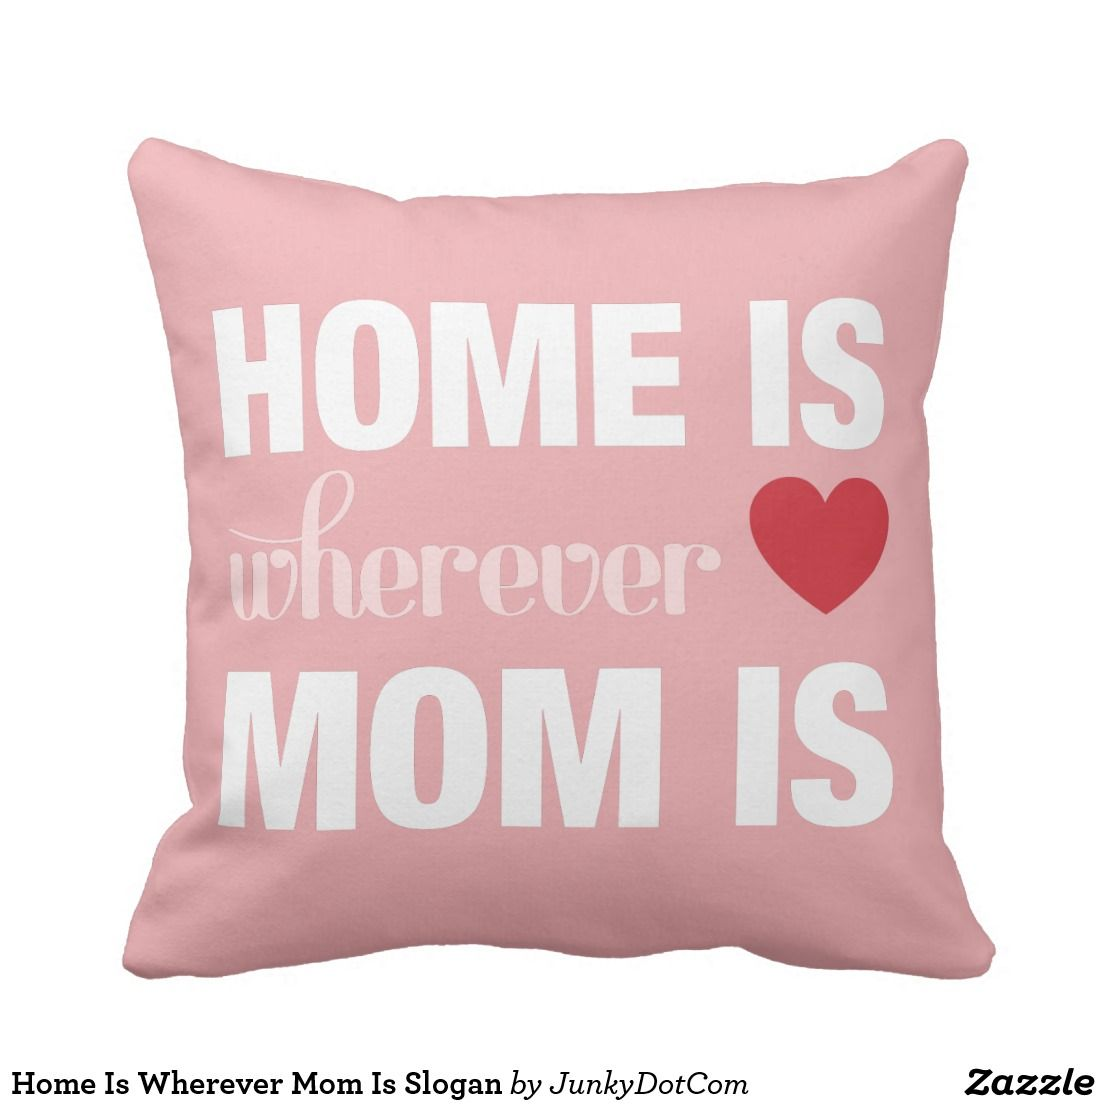 54c4cdc1 Home Is Wherever Mom Is Slogan Throw Pillow mothers day crafts for kids,  mothers day preschool, mothers day cake, mothers day crafts for kids  preschool ...